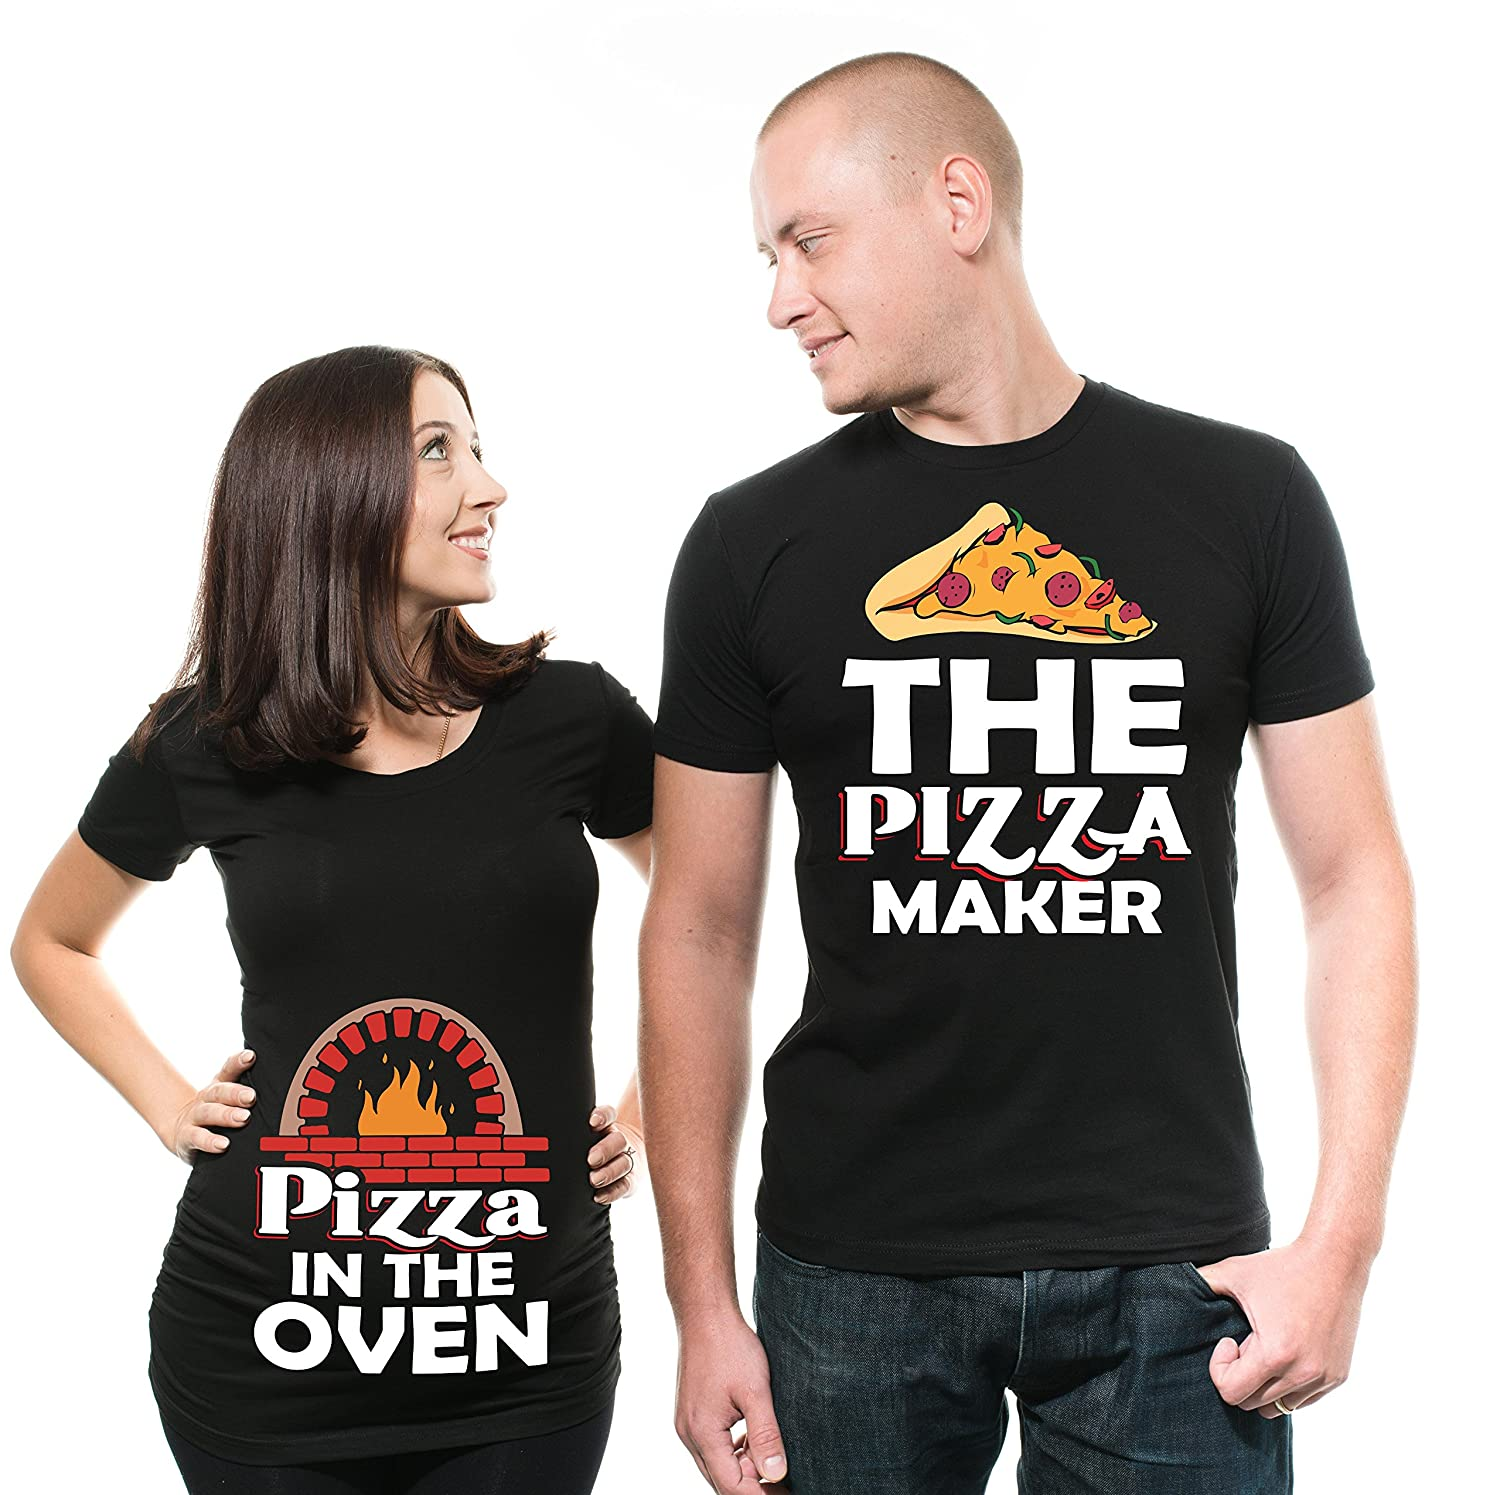 Top 10 Pizza Maker Pizza In The Oven Shirt